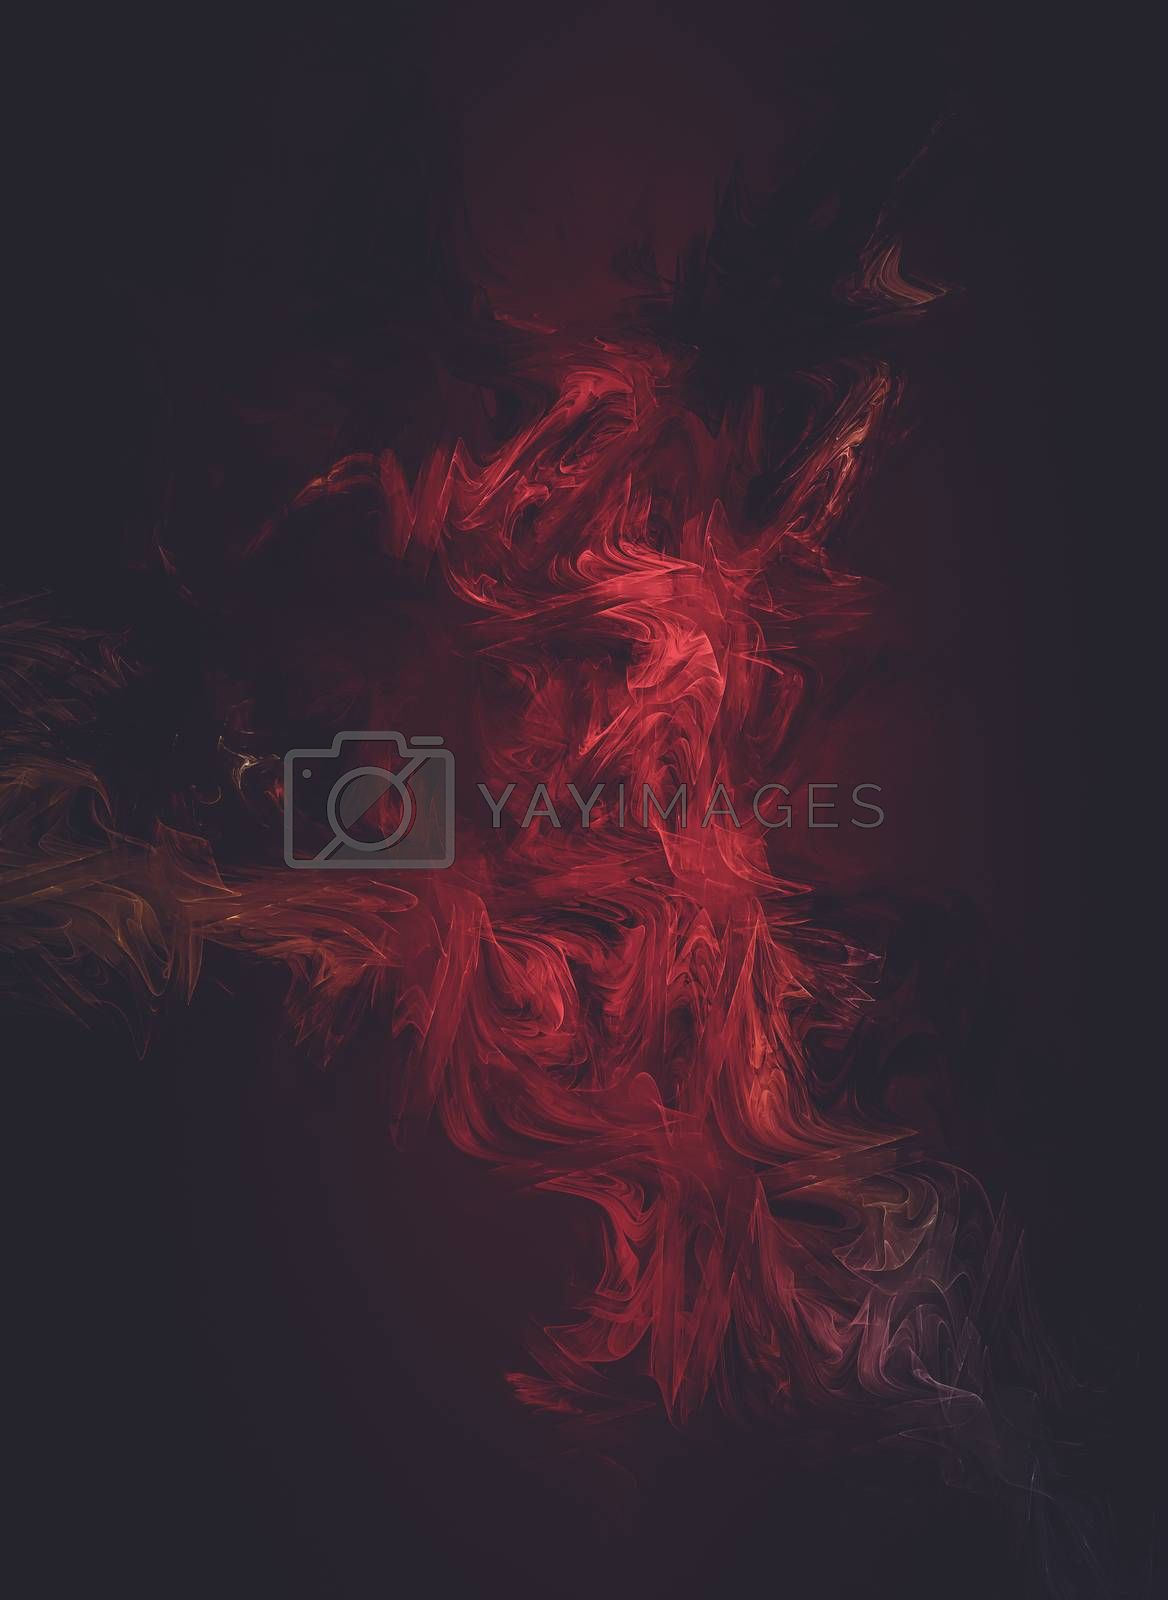 Mesh, Creative design background, fractal styles with color desi by FernandoCortes